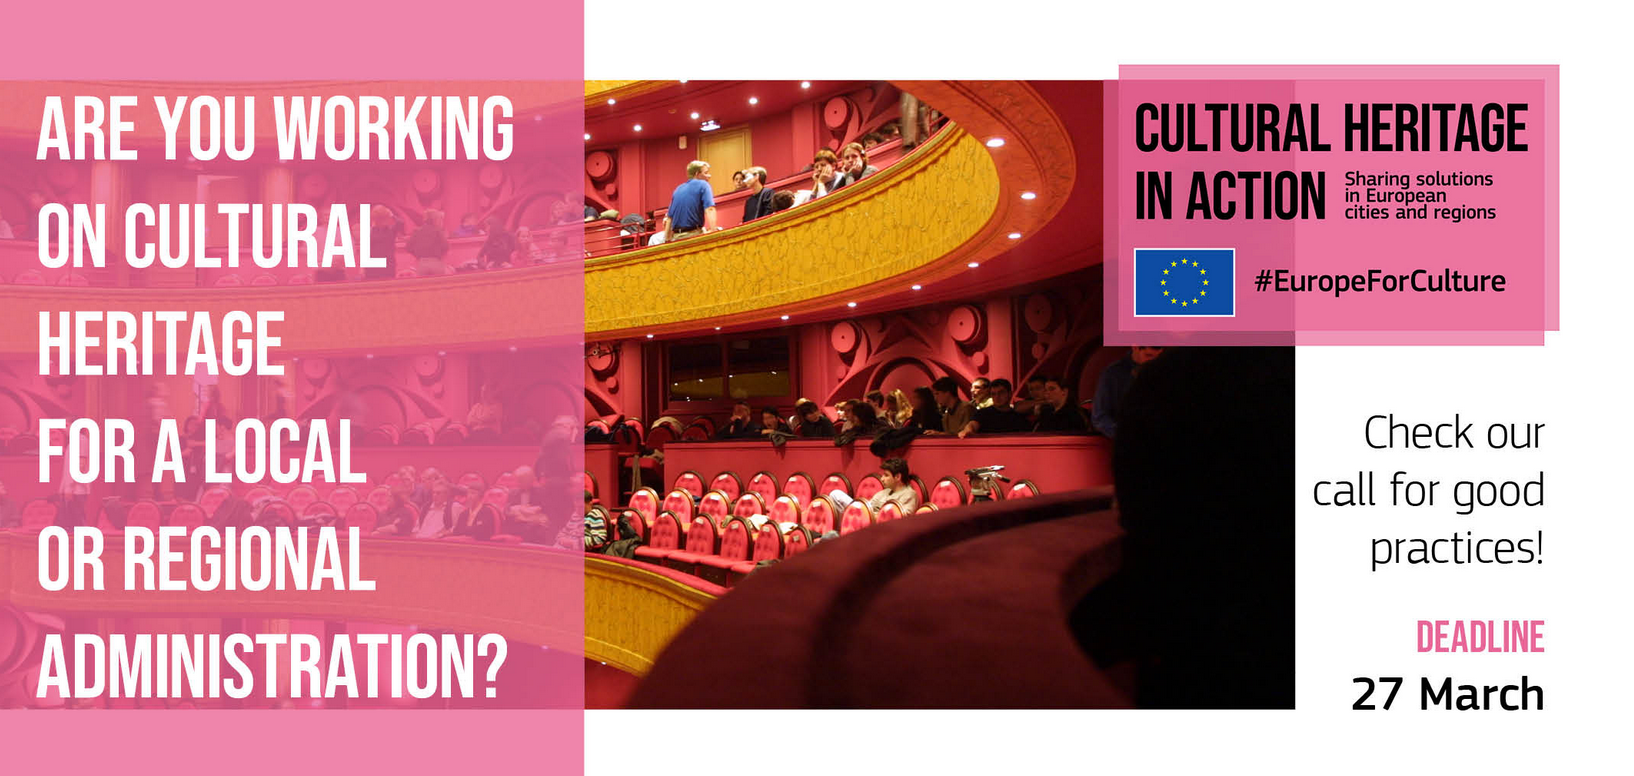 Cultural Heritage in Action programme launched: Submit your good practices from EU cities, regions, urban, non-urban and rural areas